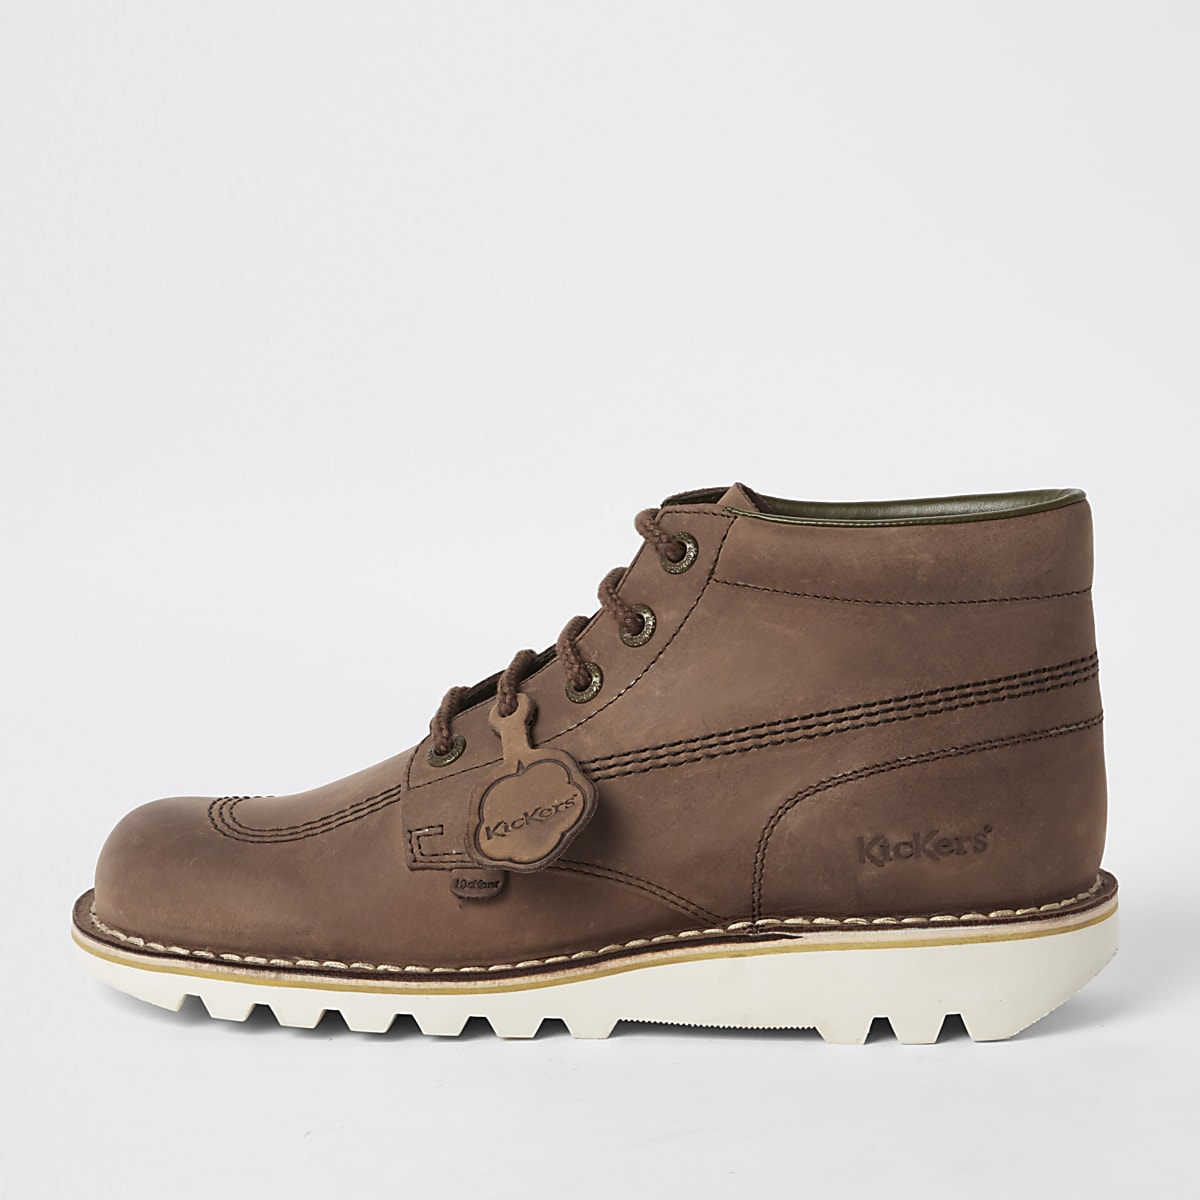 Kickers brown leather lace-up boots